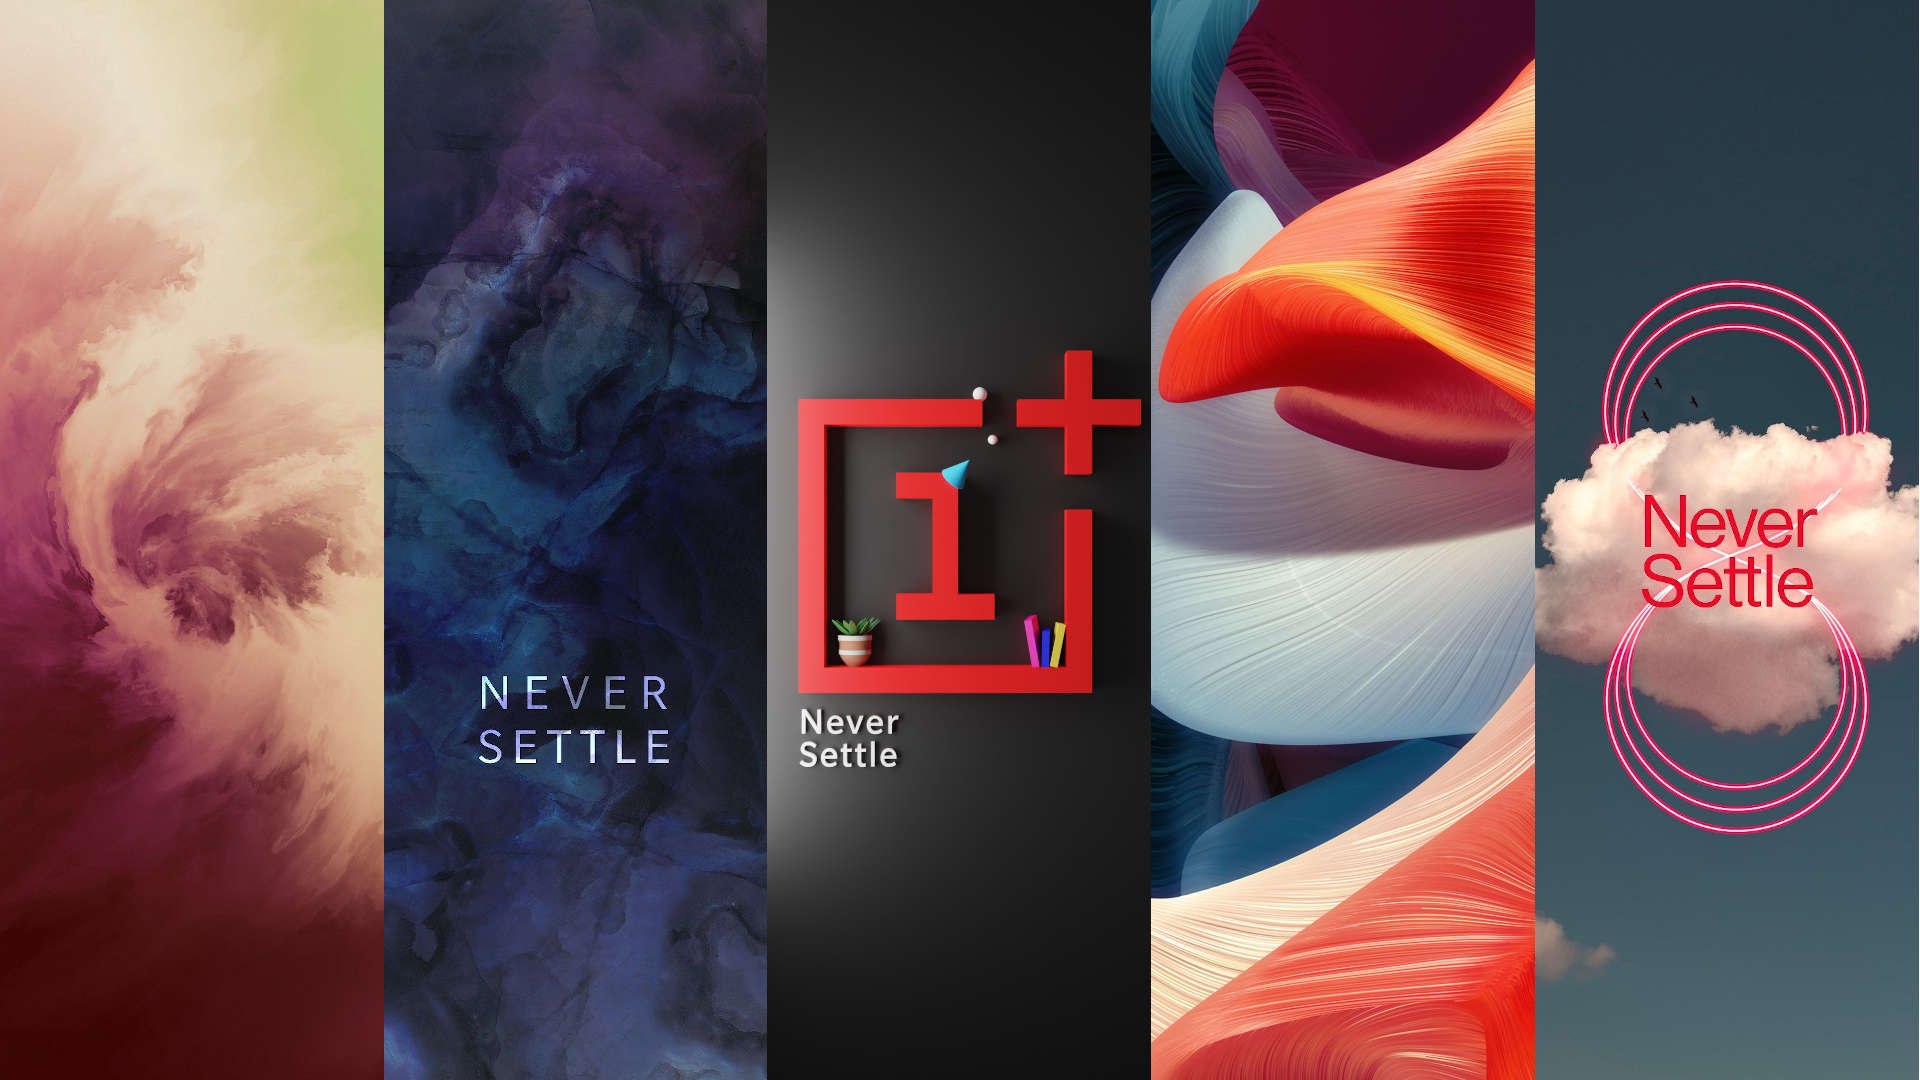 Oneplus Creative Wallpaper Contest Here Are The Winners Download